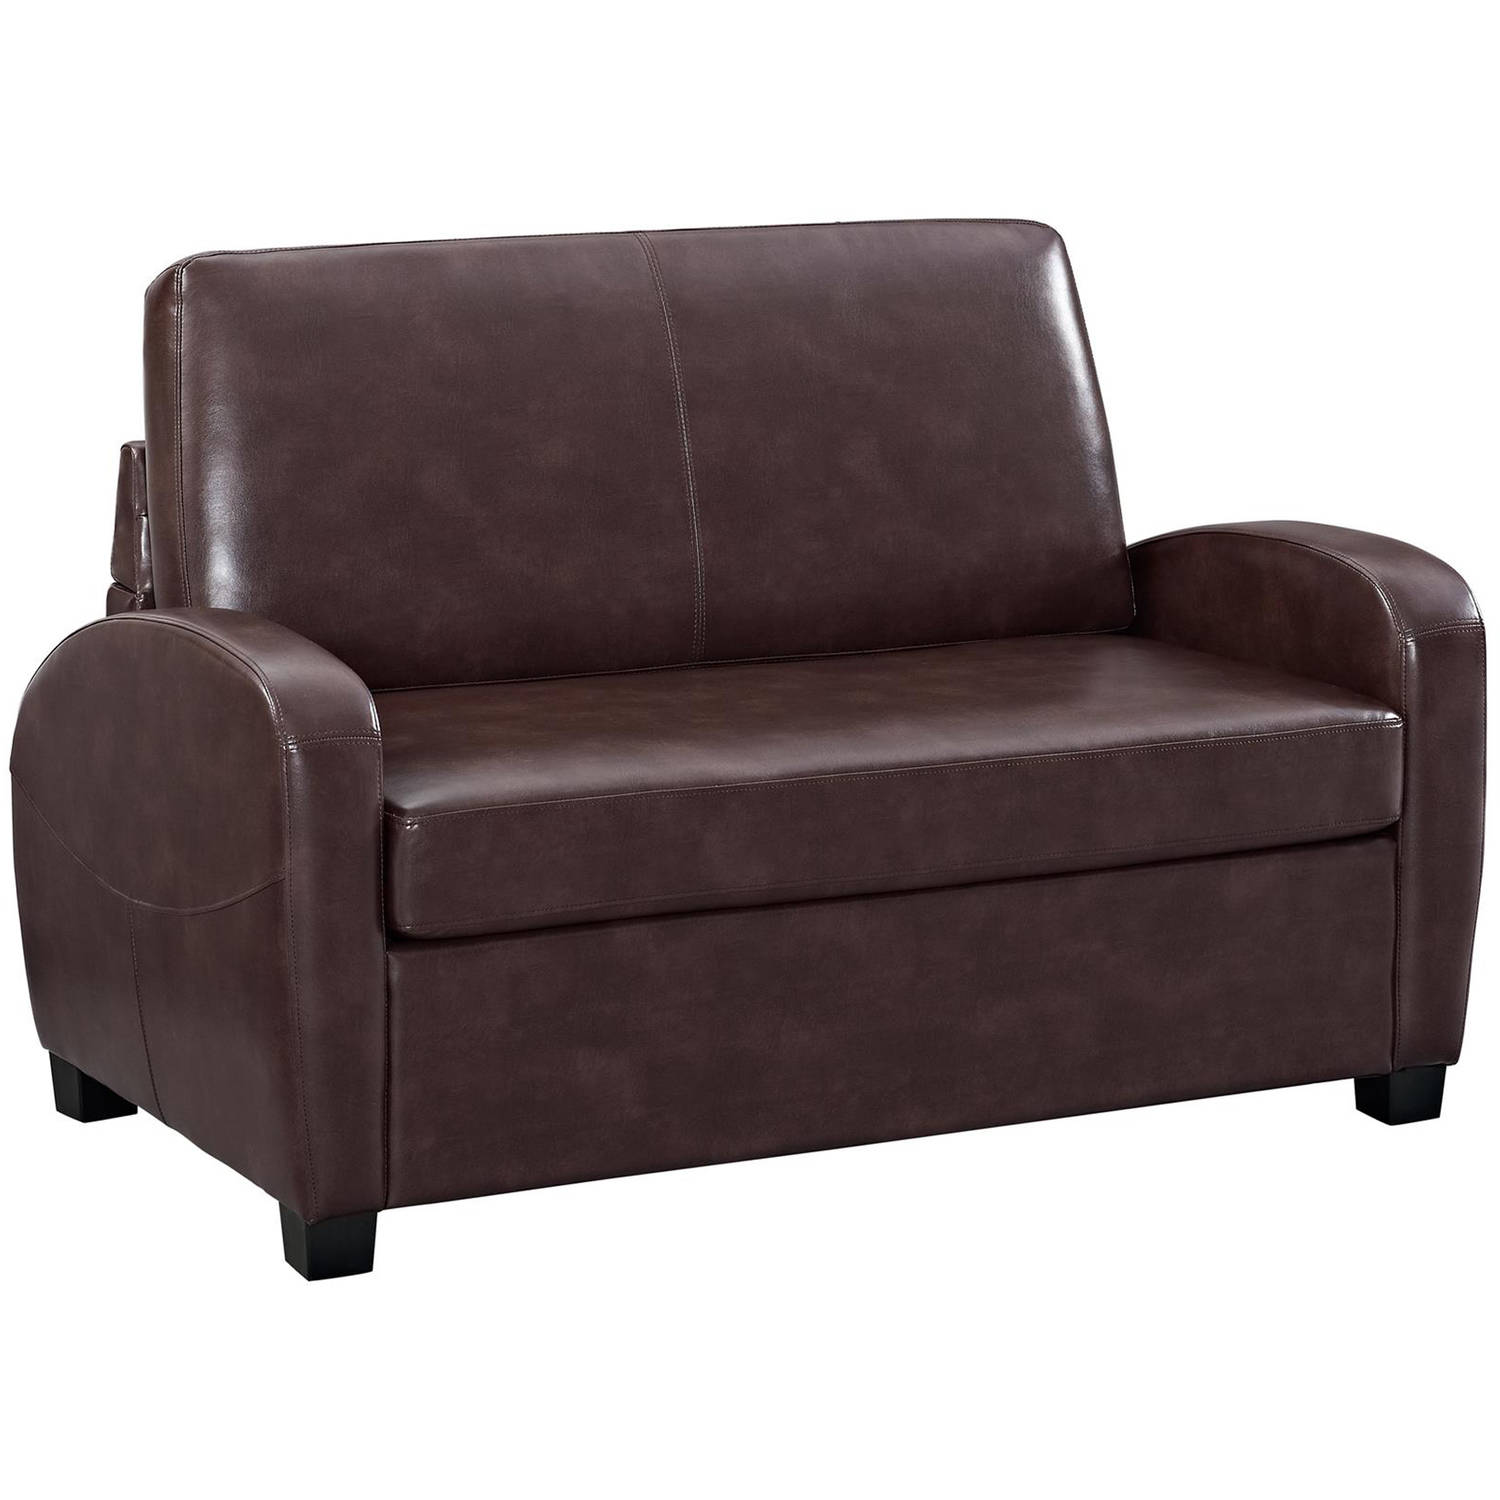 Convertible Chair Sleeper Convertible Sofa Leather Couch Twin Bed Mattress Sleeper